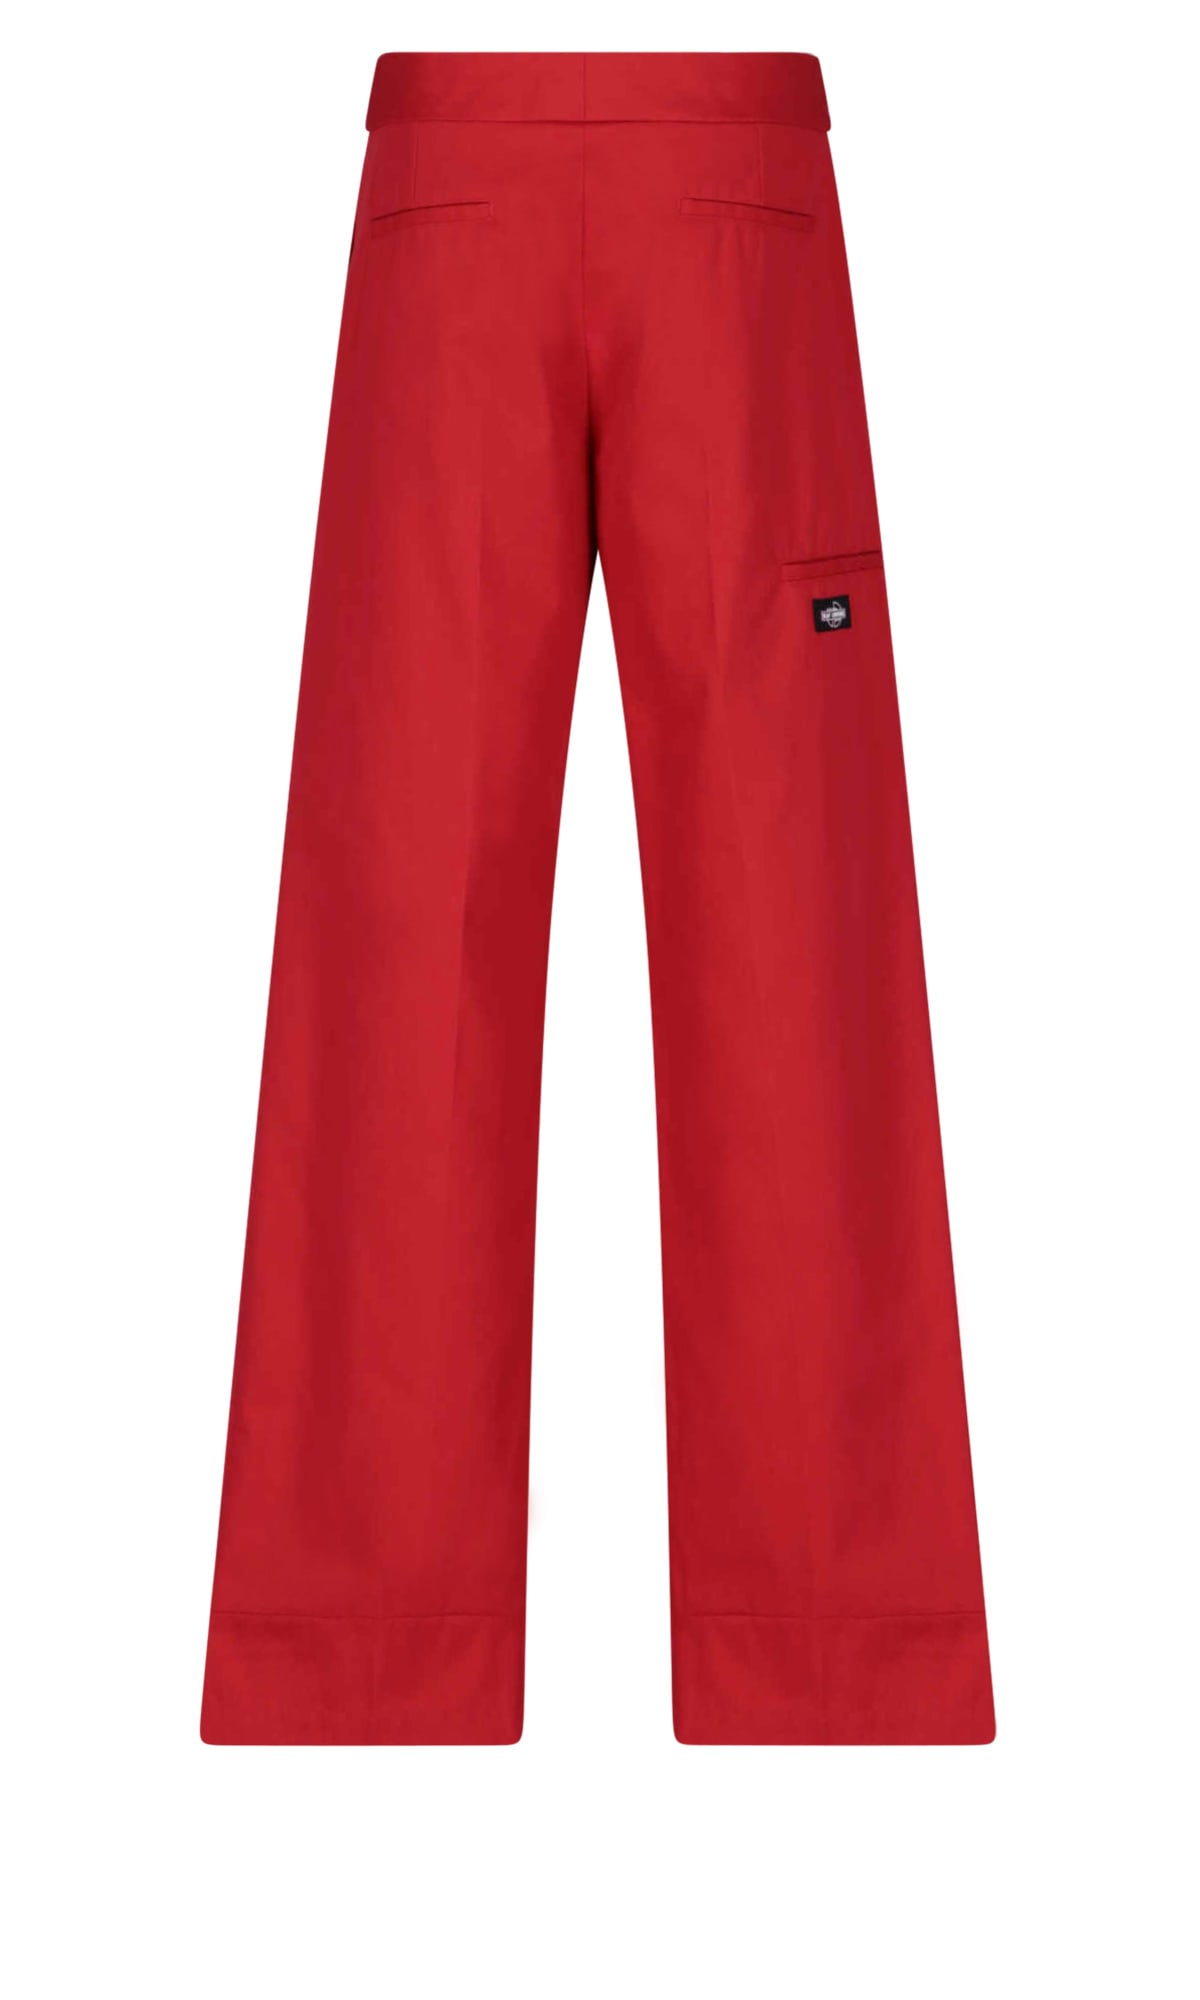 Raf Simons Jeans In Red